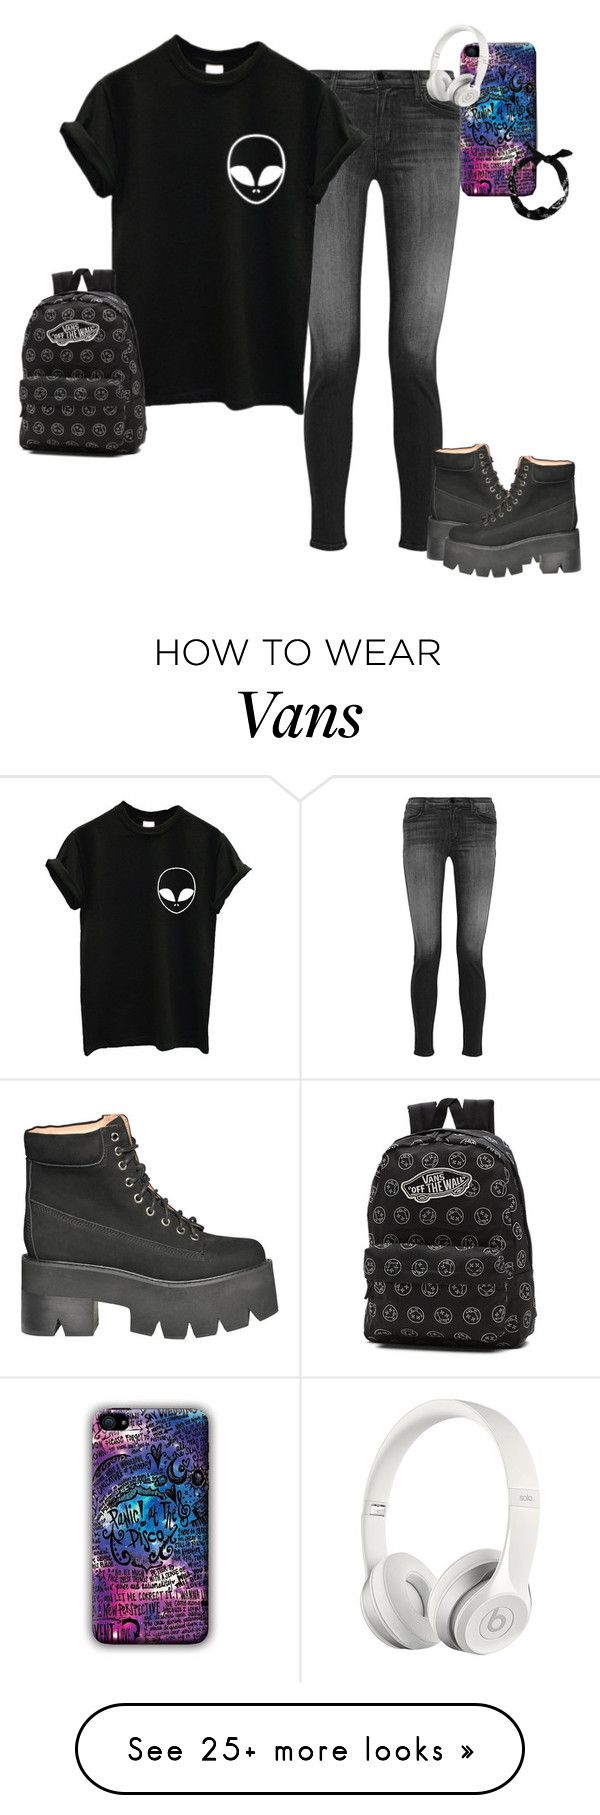 """""""Untitled #844"""" by blackveilbridesbvbsixx on Polyvore featuring J Brand, Jeffrey Campbell, Vans, Beats by Dr. Dre, women's clothing, women's fashion, women, female, woman and misses"""